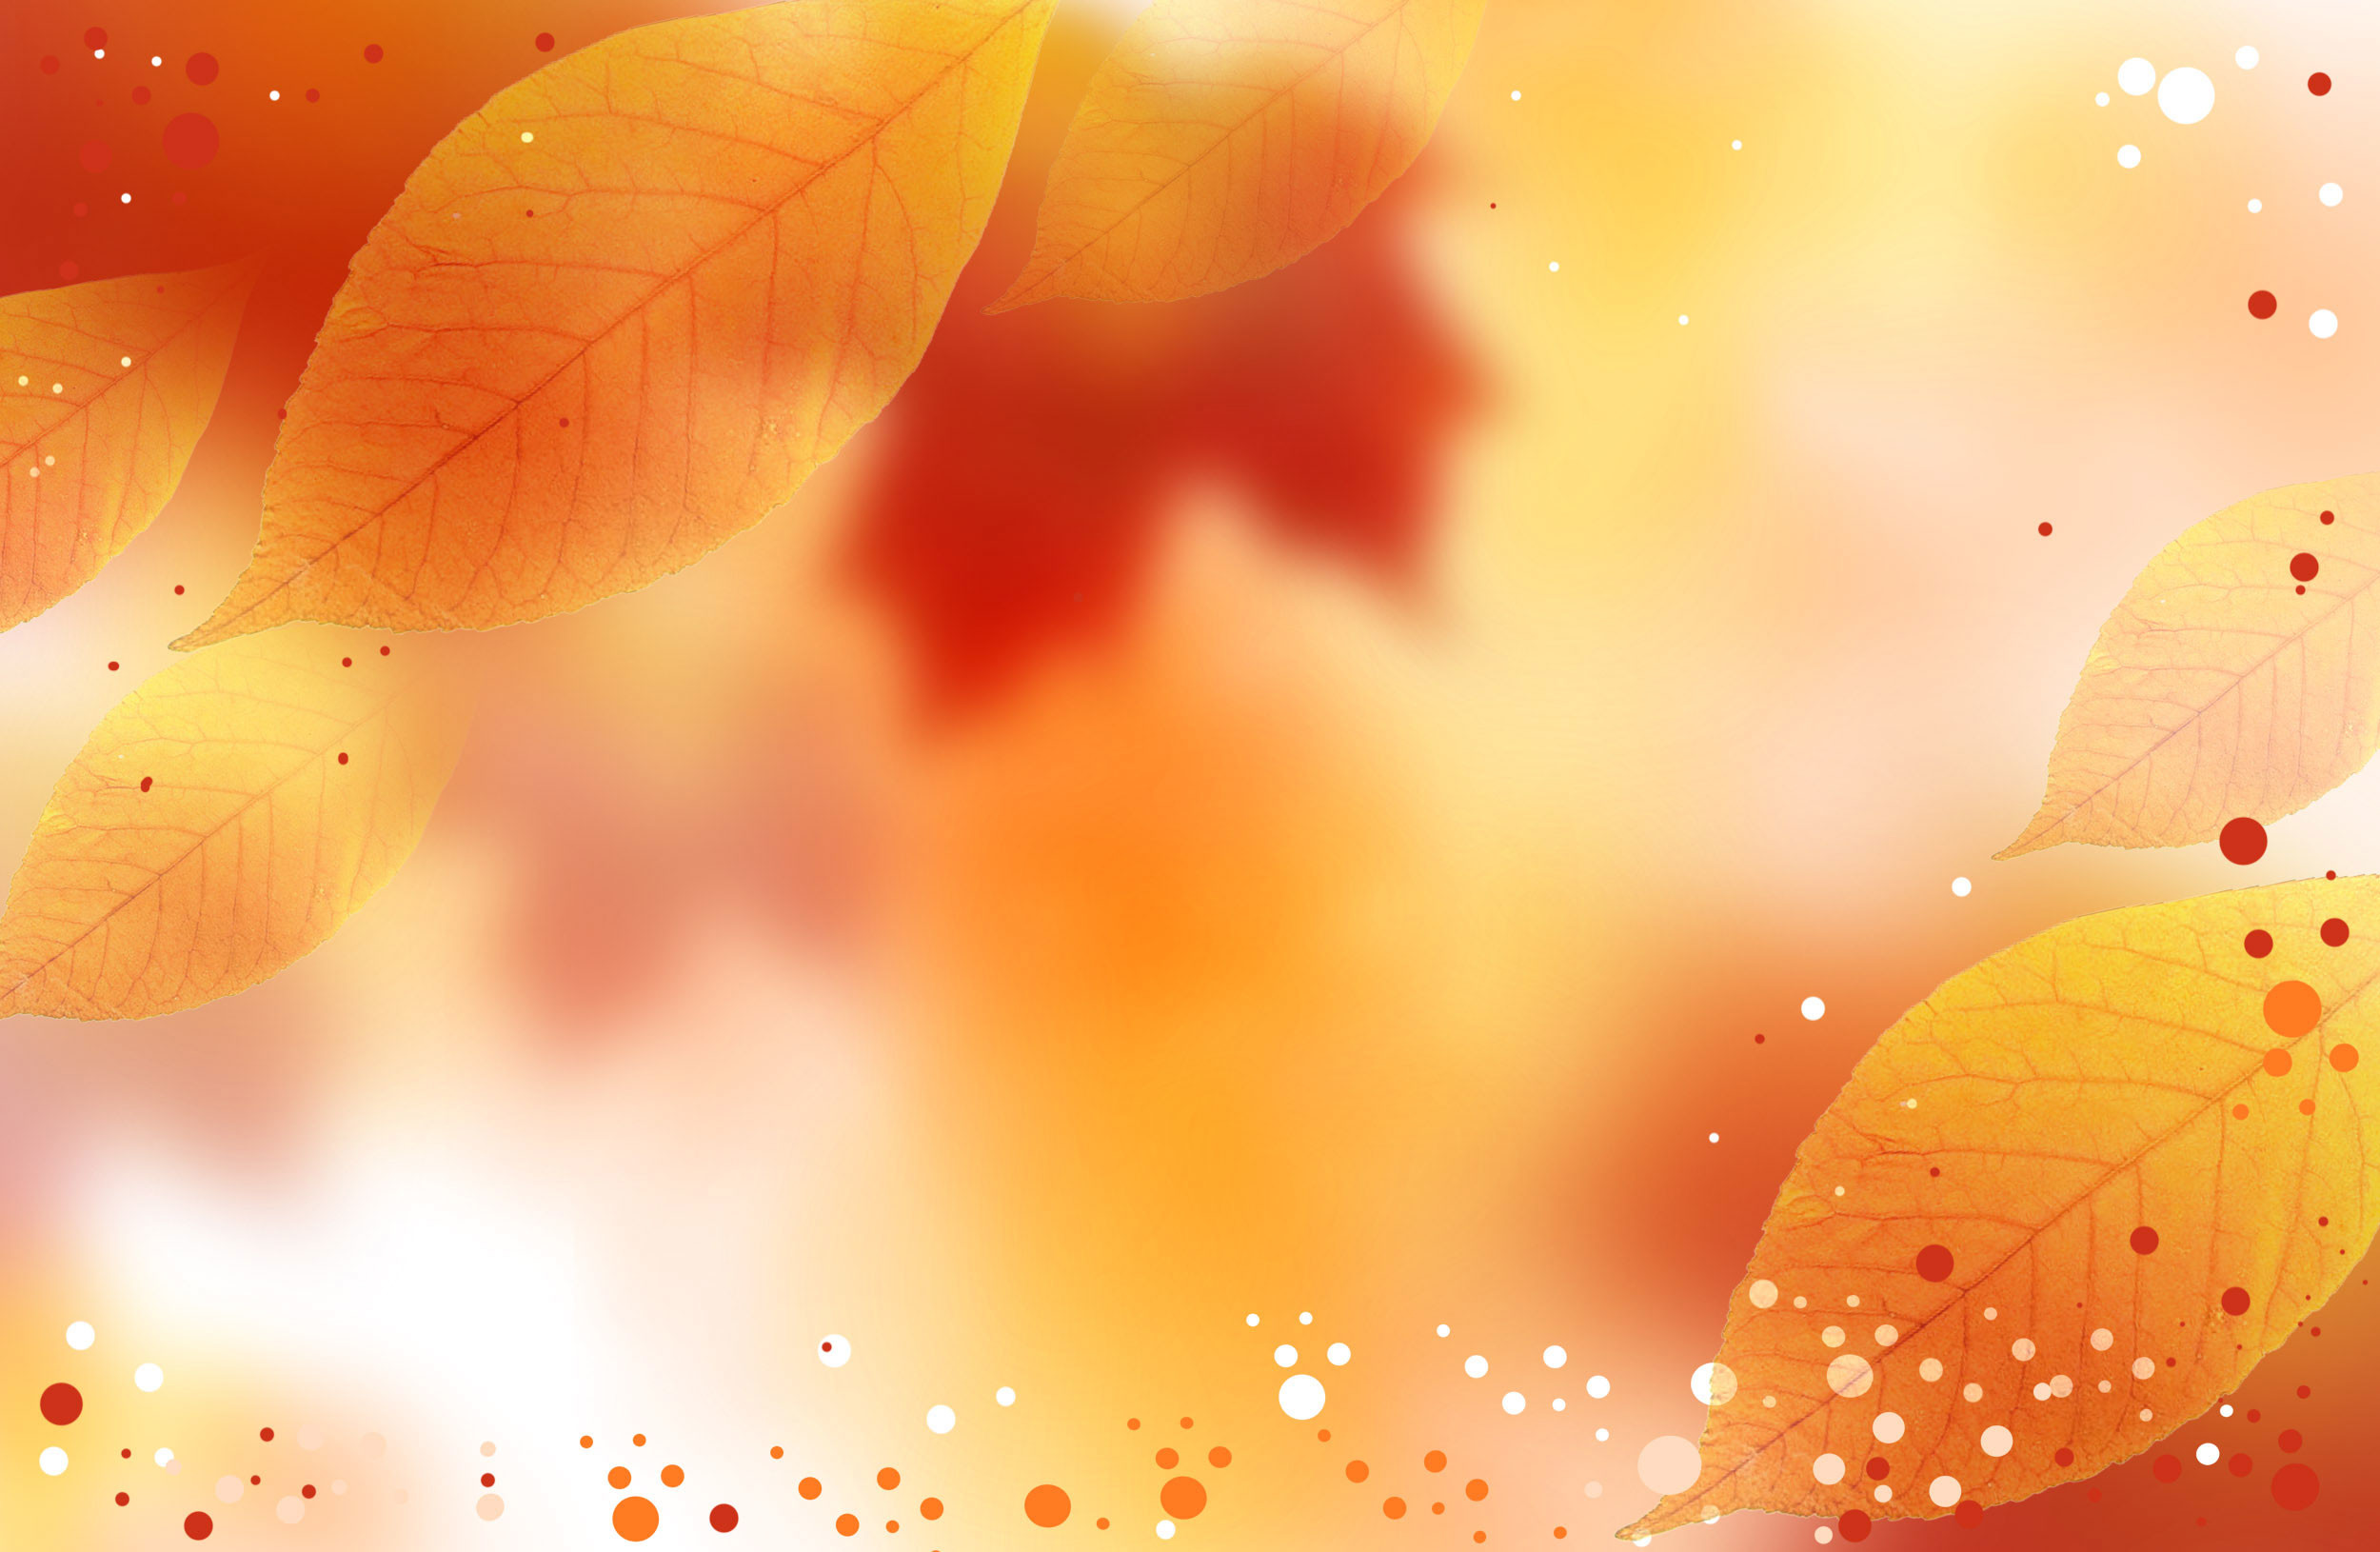 2500x1630 Fall colors on the background with Autumn leaves and white, orange and red  dots as spread and highlights.